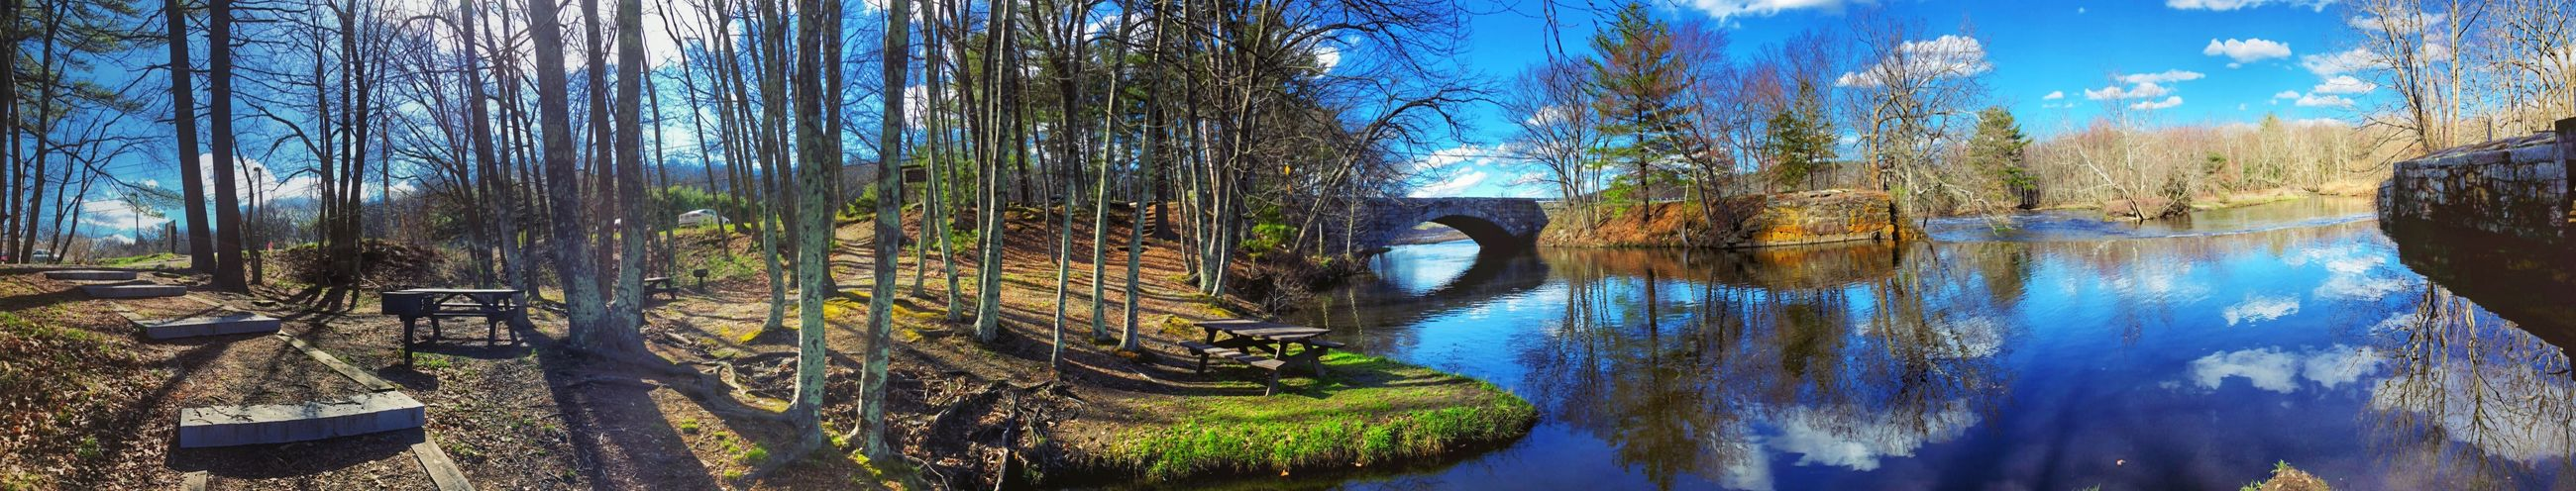 Panoramic View of the Blackstone River & Canal Heritage Corridor State Park Plant Tree Water Nature Reflection No People Day Panoramic Blue Sunlight Tranquility Beauty In Nature Tranquil Scene Scenics - Nature Sky Outdoors Growth